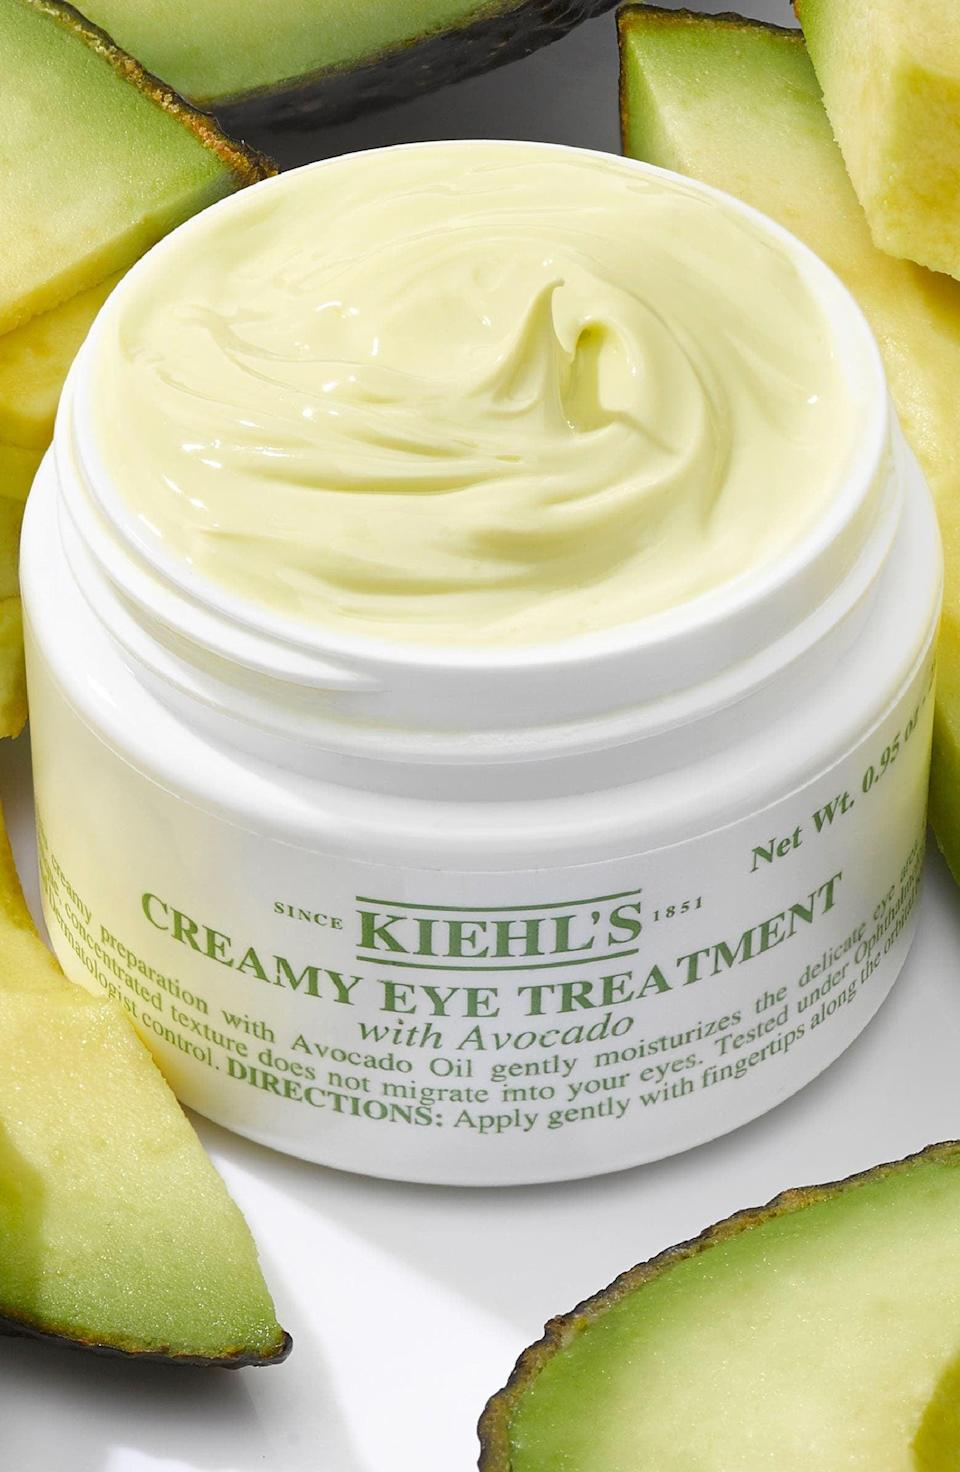 <p>Give your under eye area some extra love with the nourishing <span>Kiehl's Creamy Eye Treatment with Avocado</span> ($32-$50).</p>